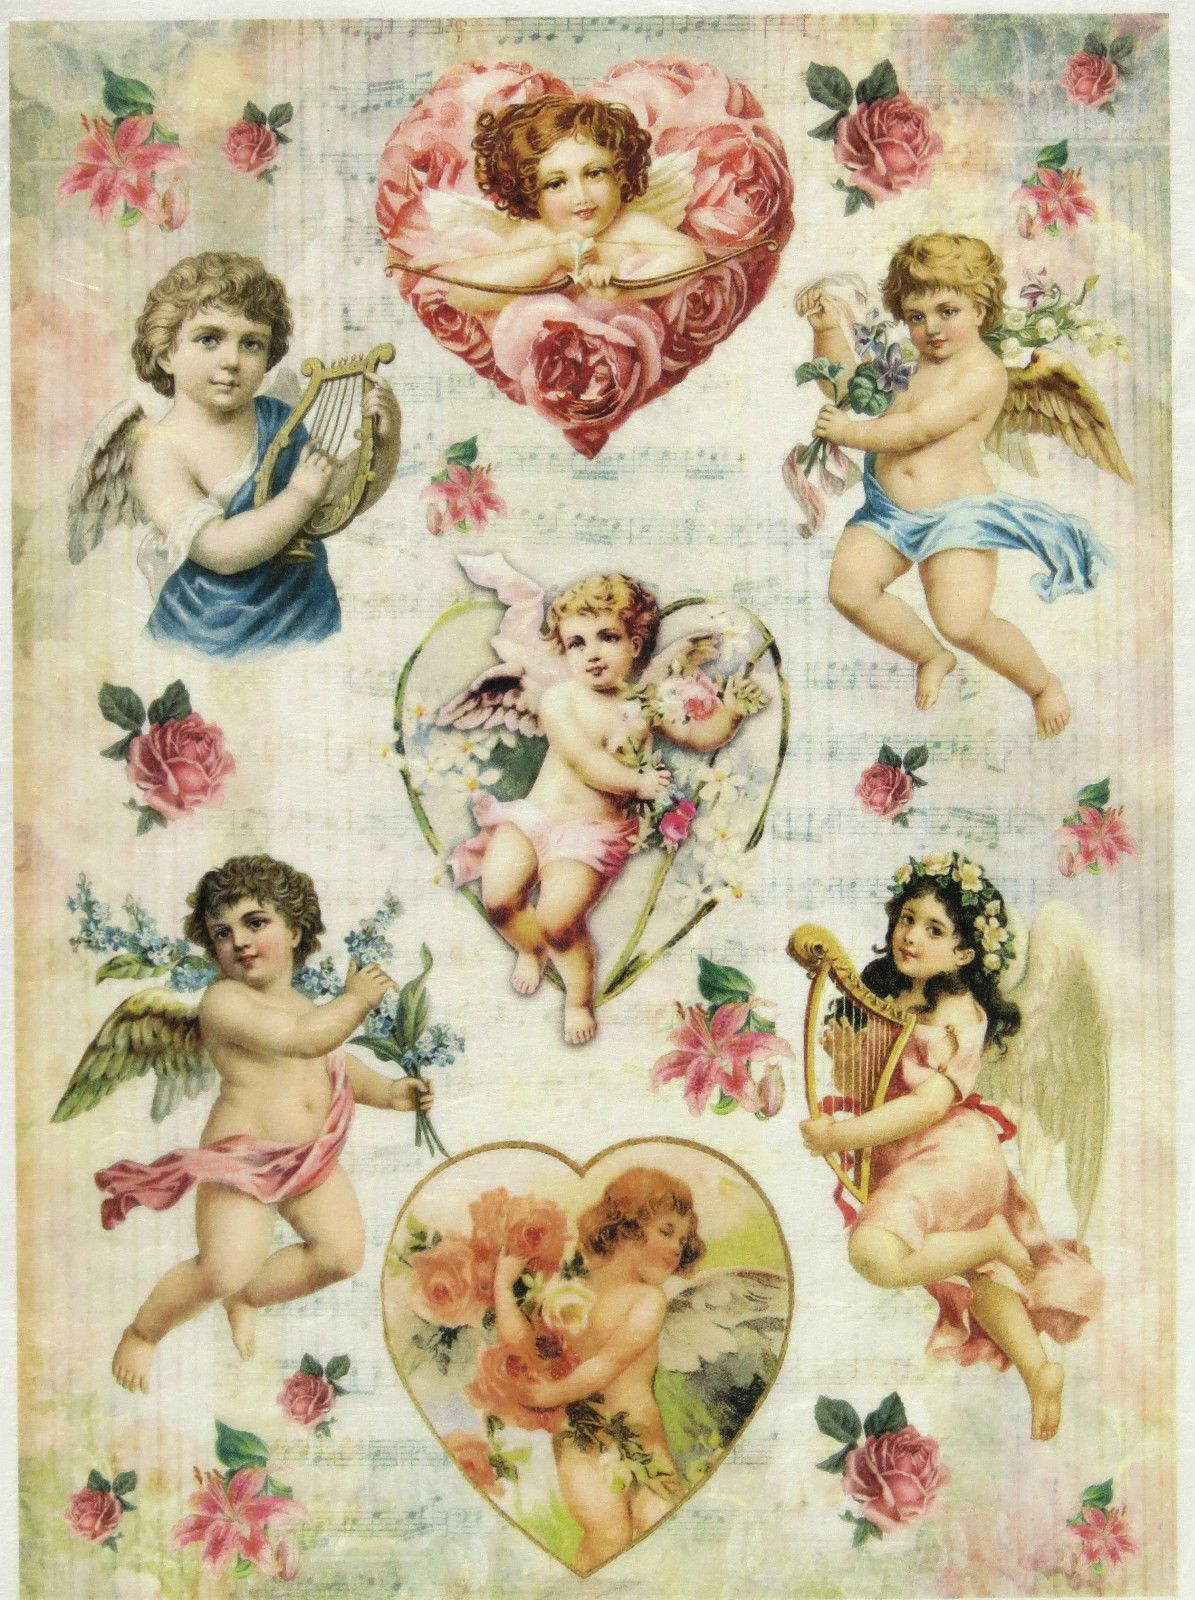 Vintage Valentine cherub angel antique illustrations set of 8 scrapbooking